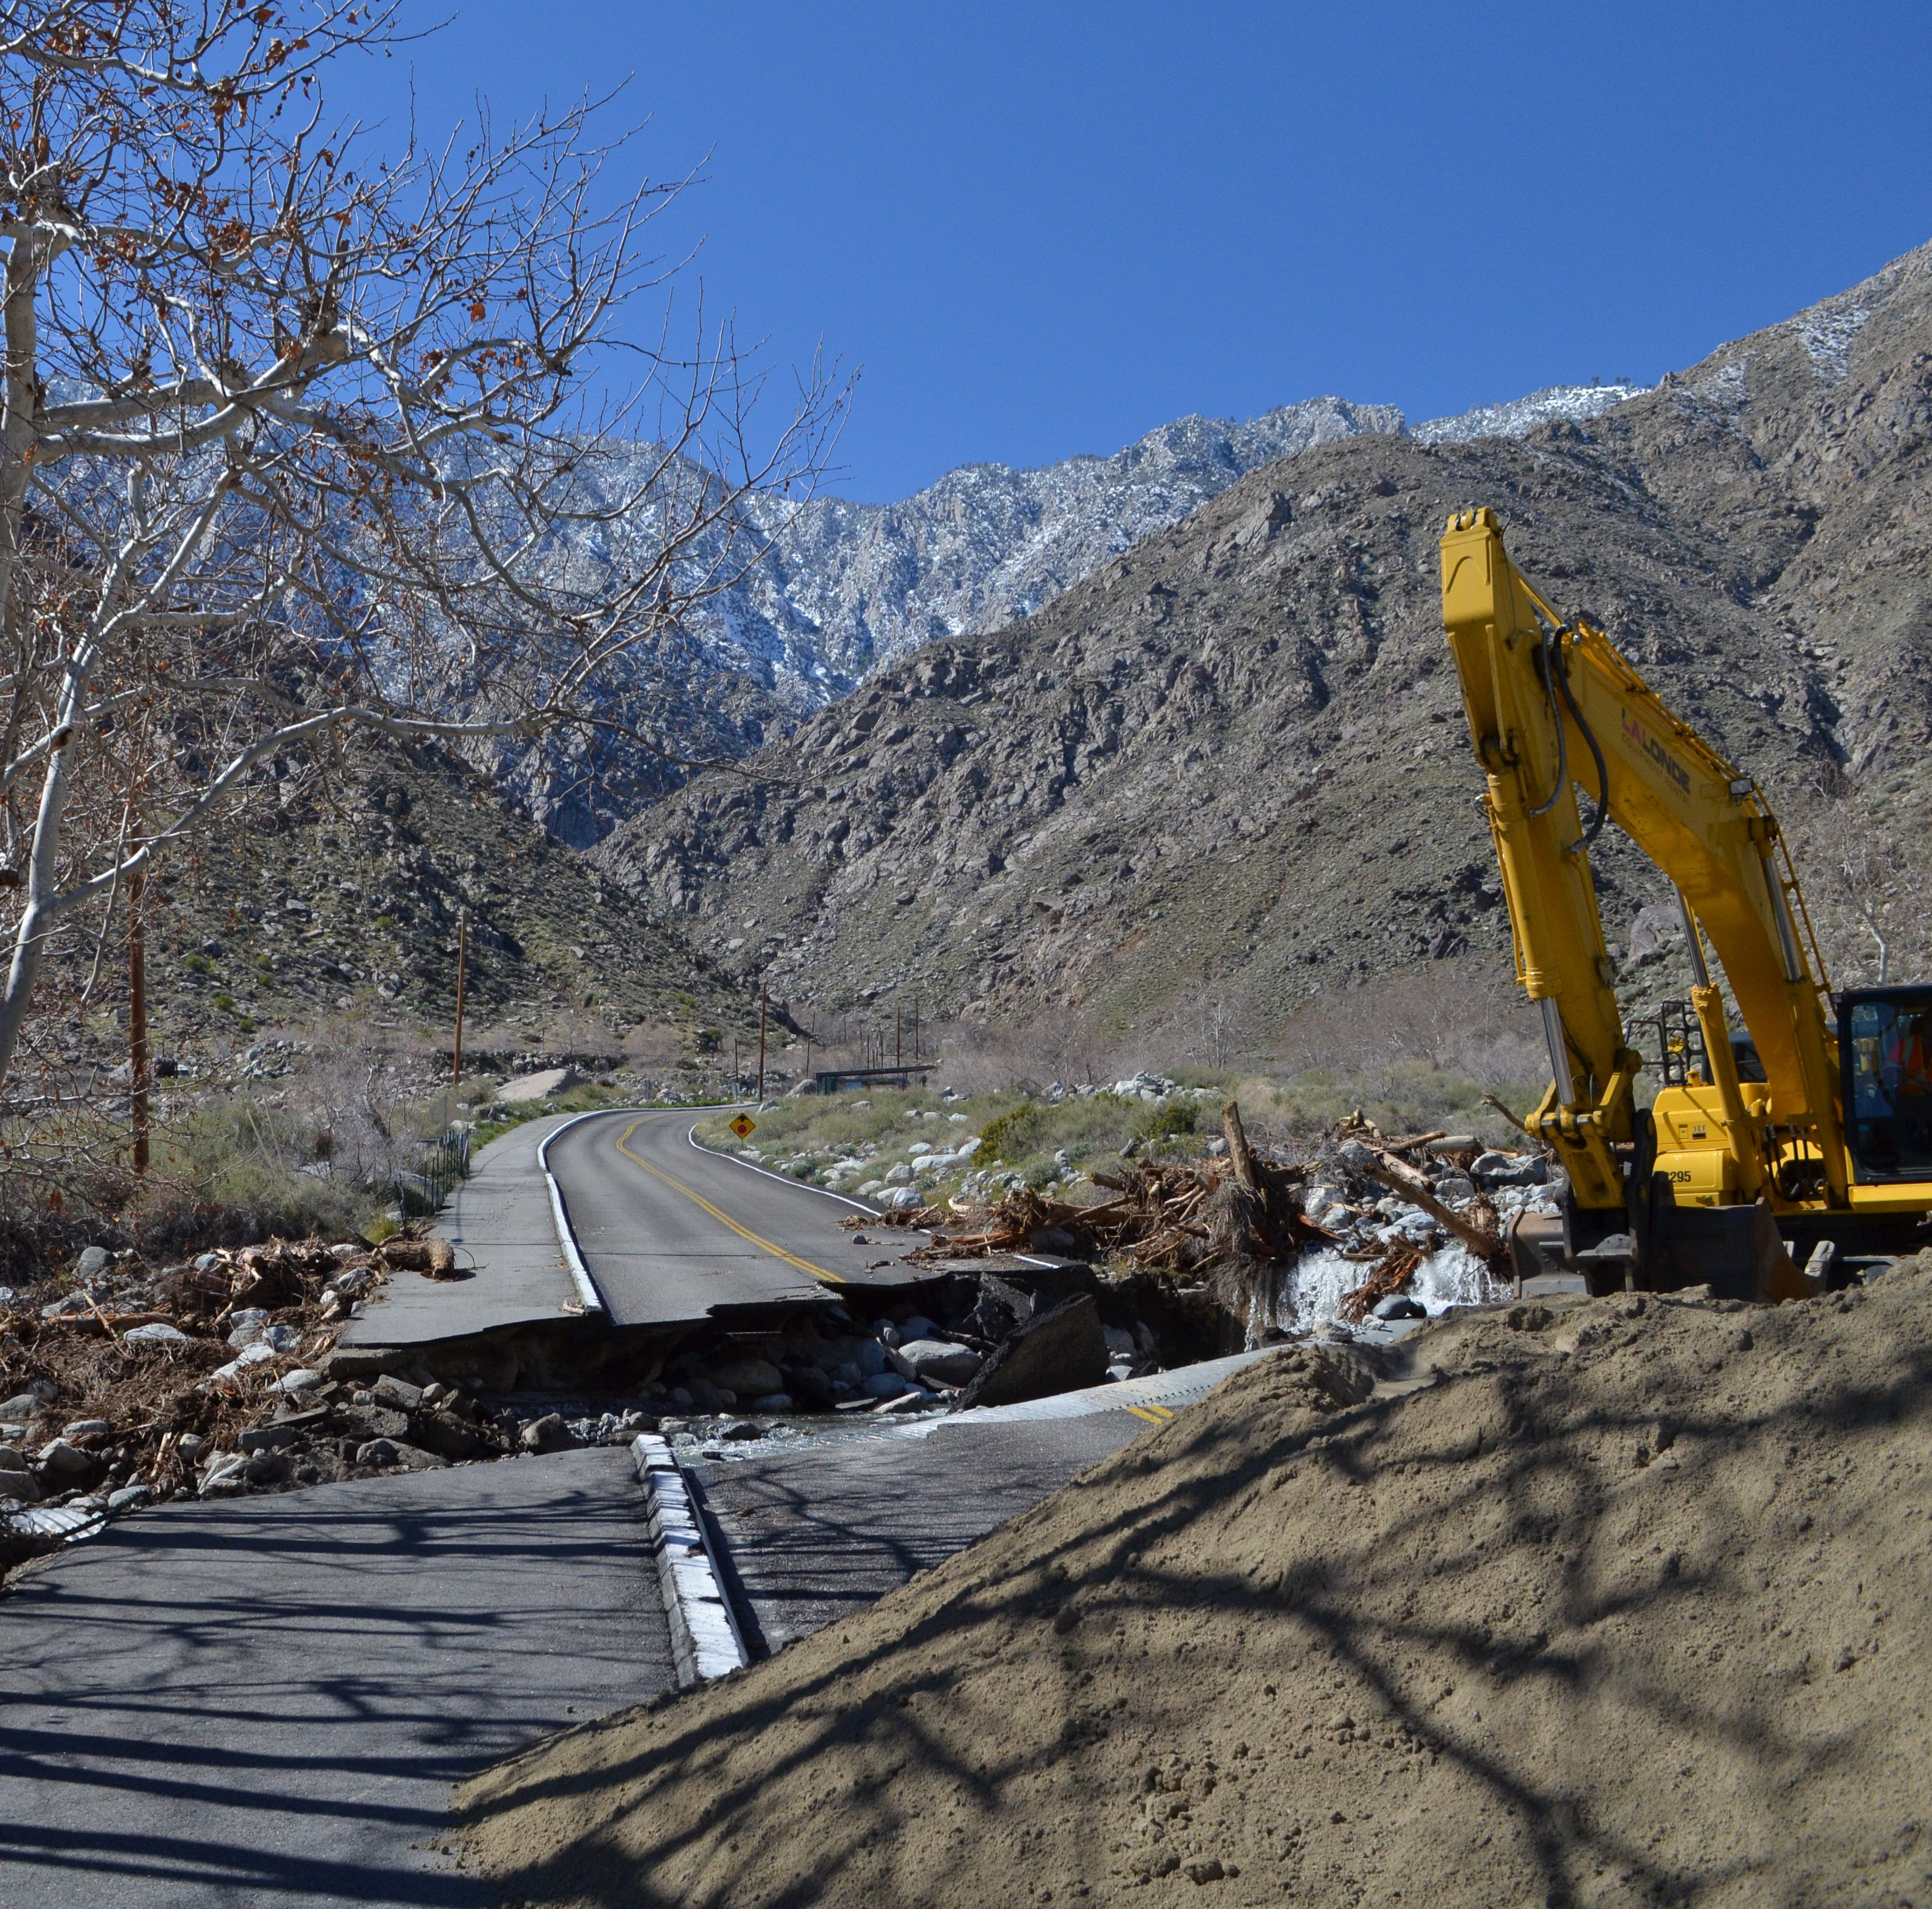 Palm Springs Tramway Road expected to cost $58,000 for initial repairs; no reopening date yet